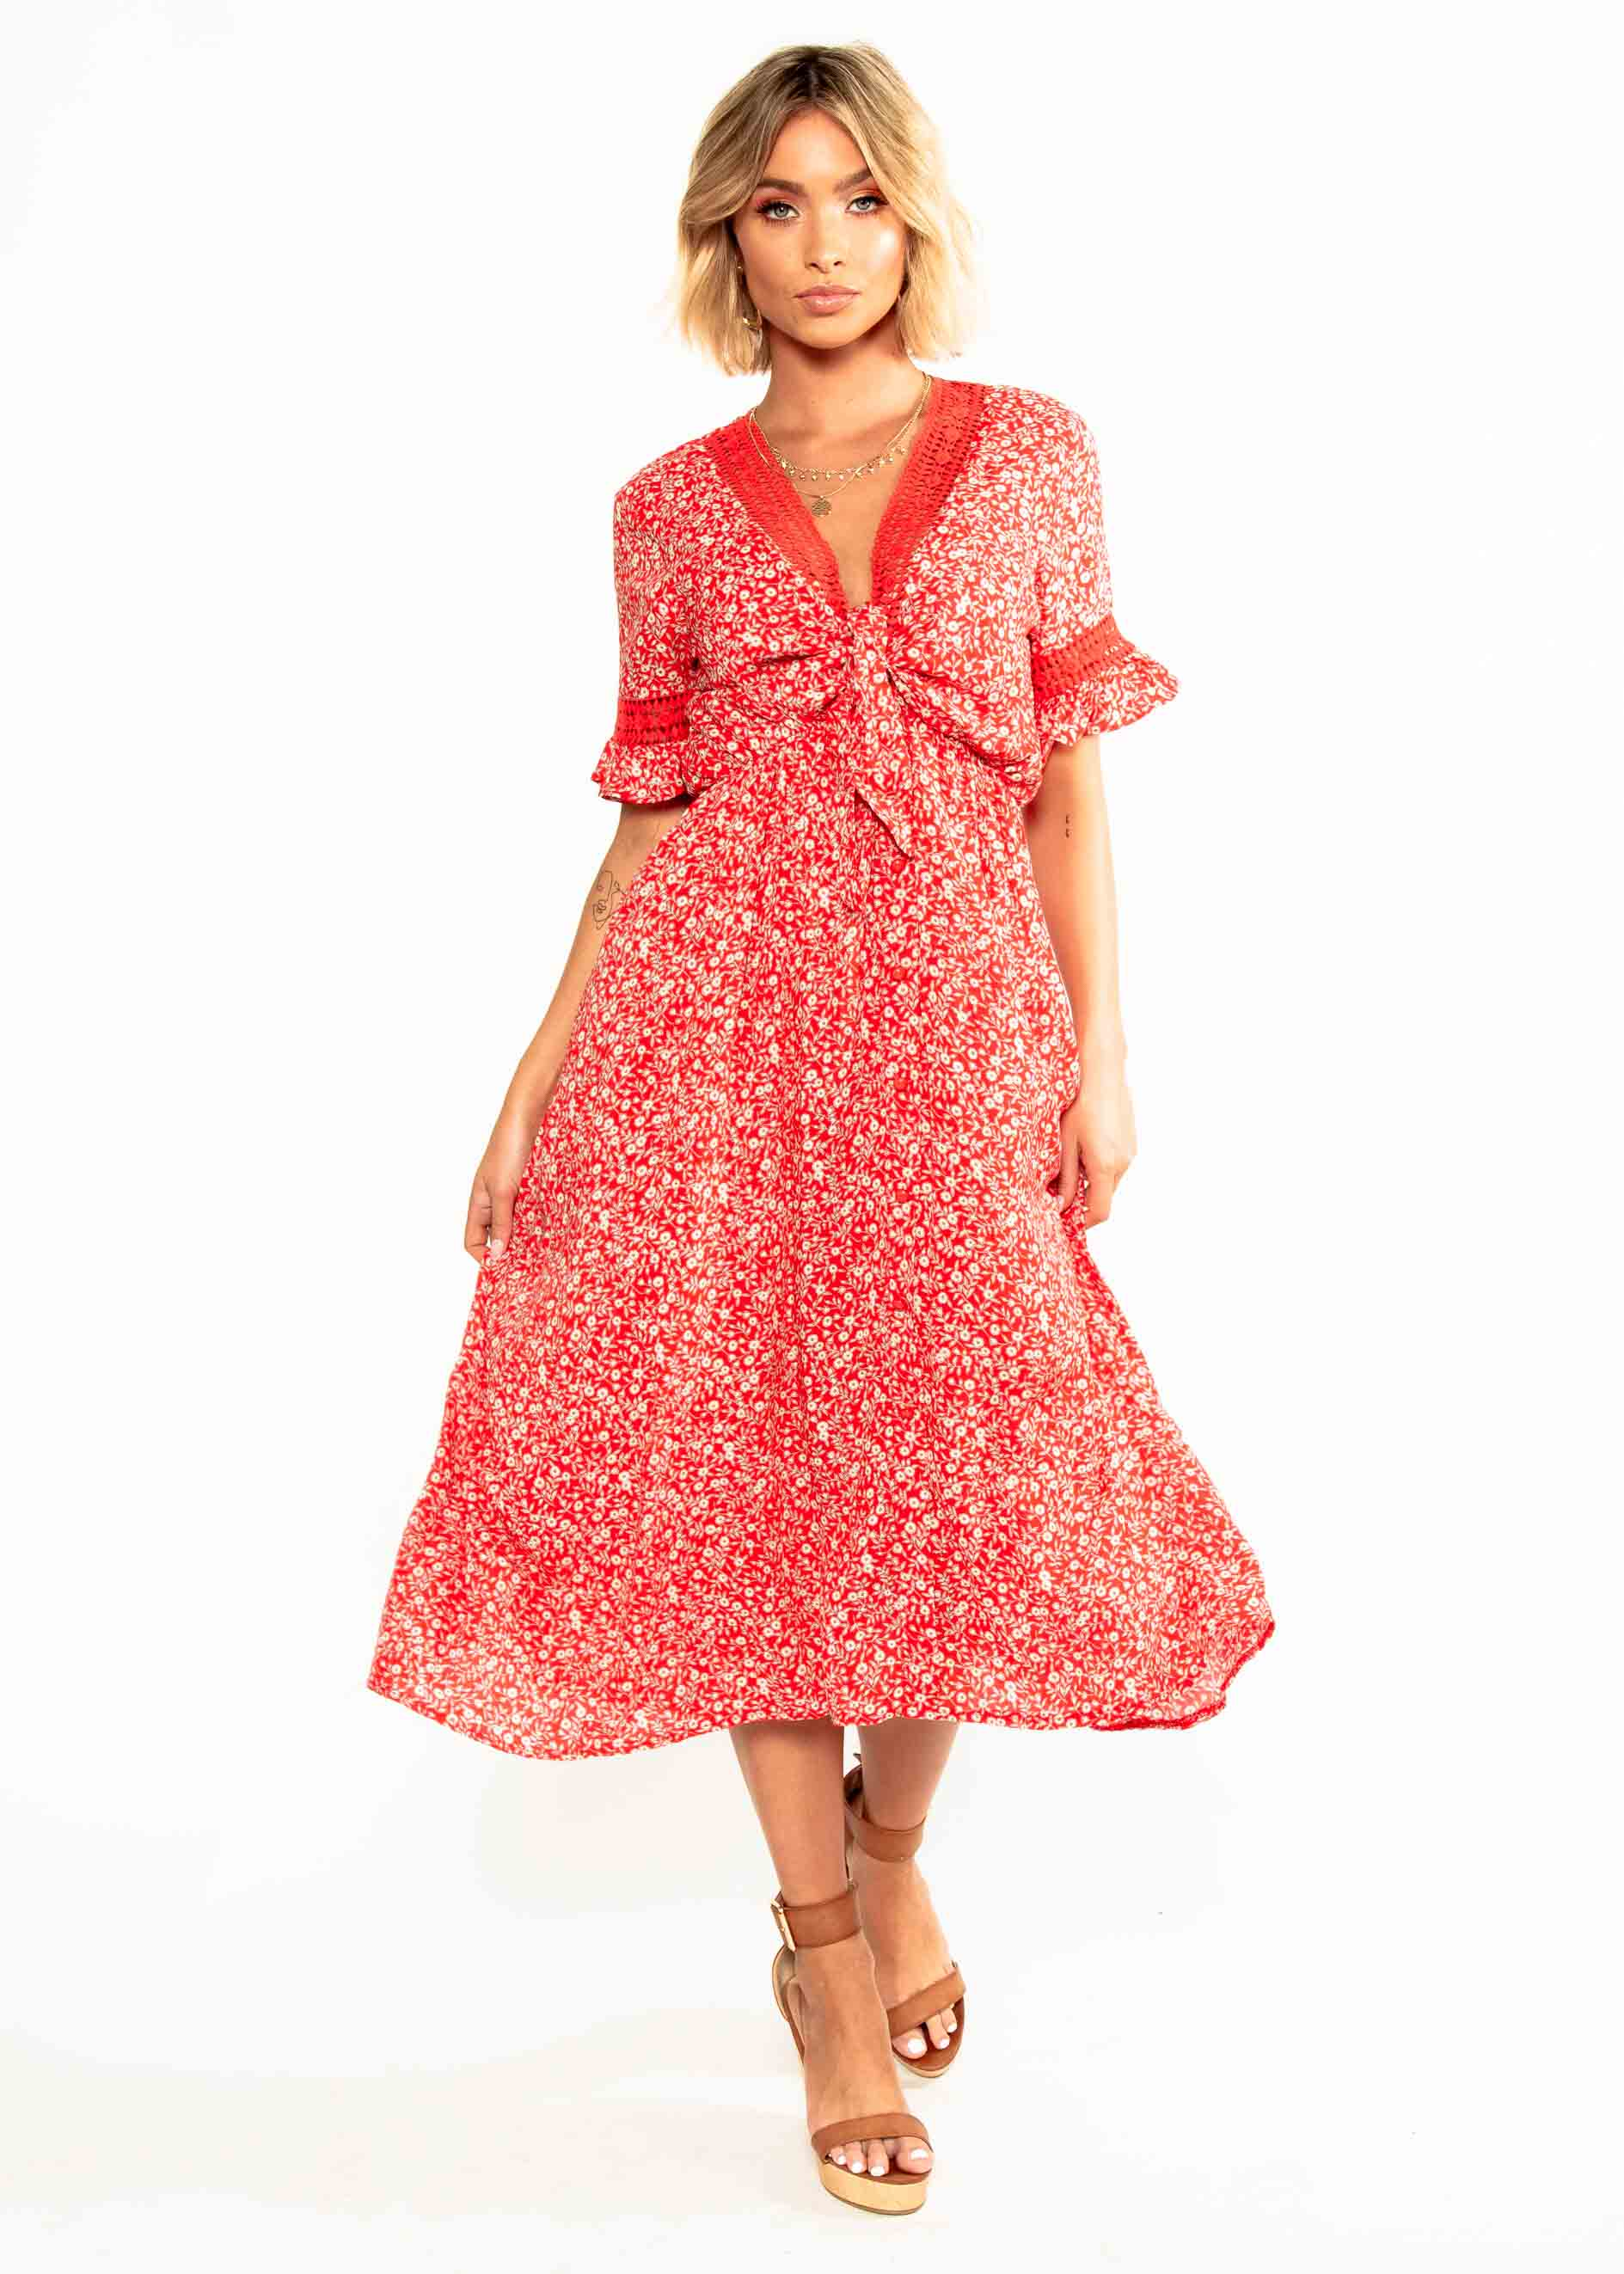 Lovers Kiss Tie Midi Dress - Red Floral